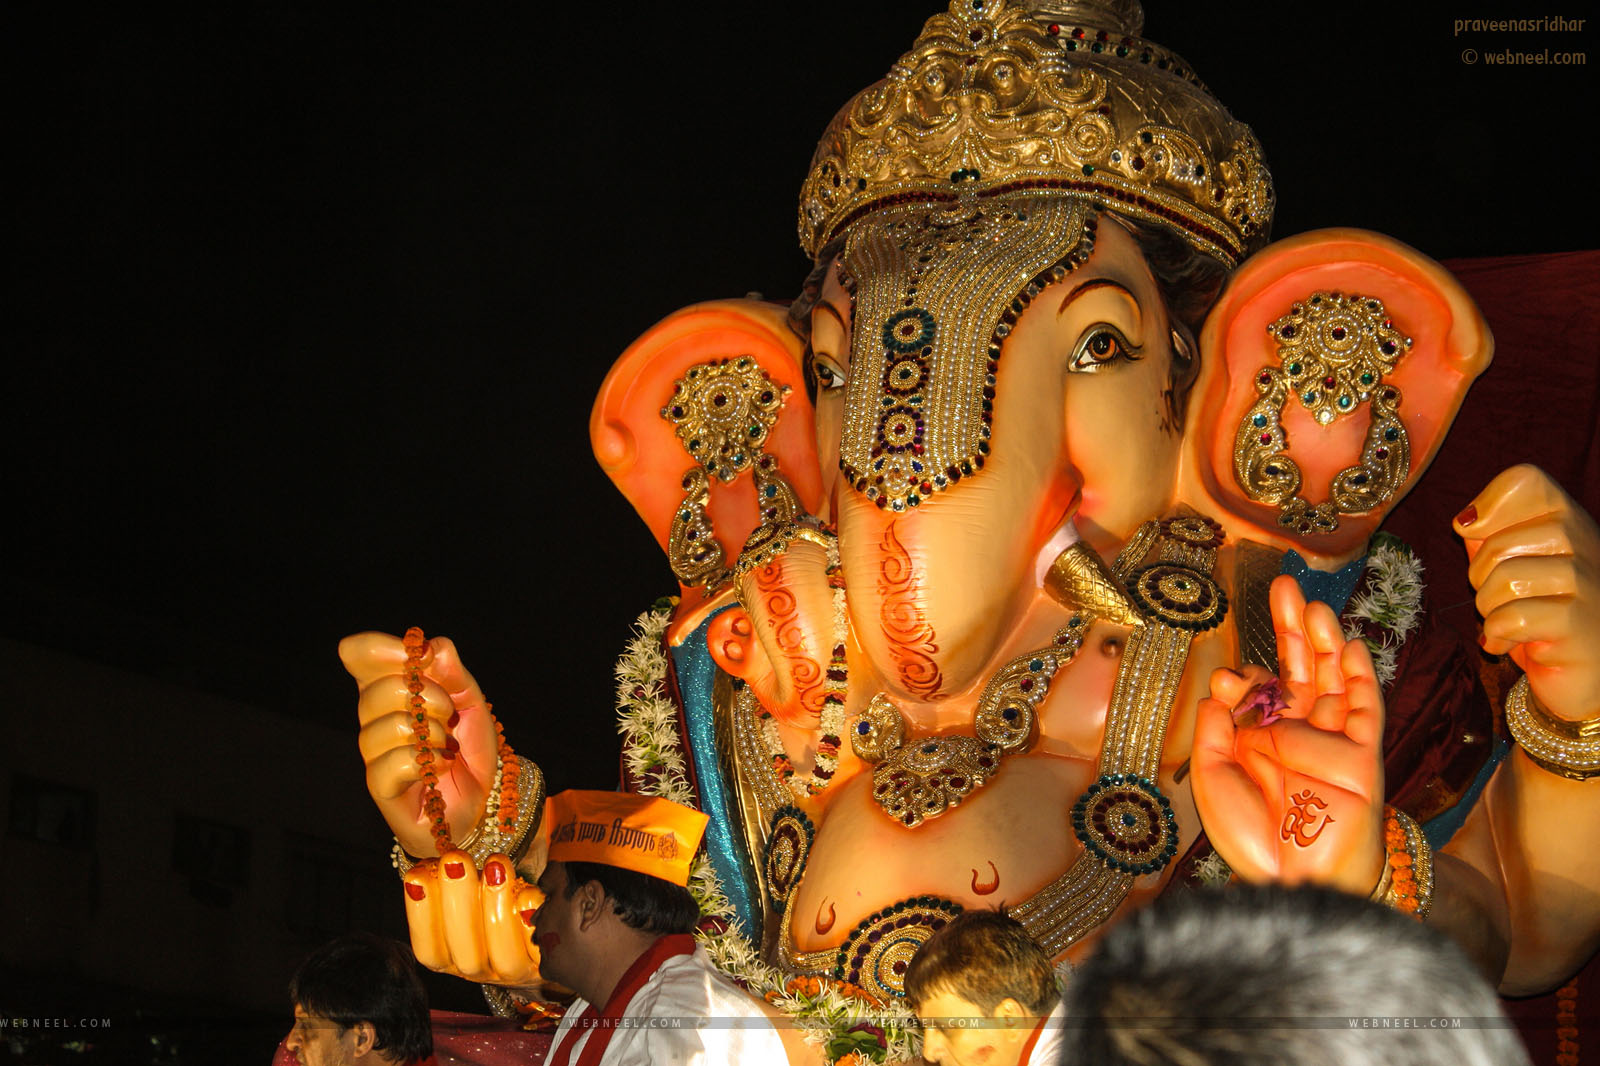 ganesh chathurthi photo praveenasridhar